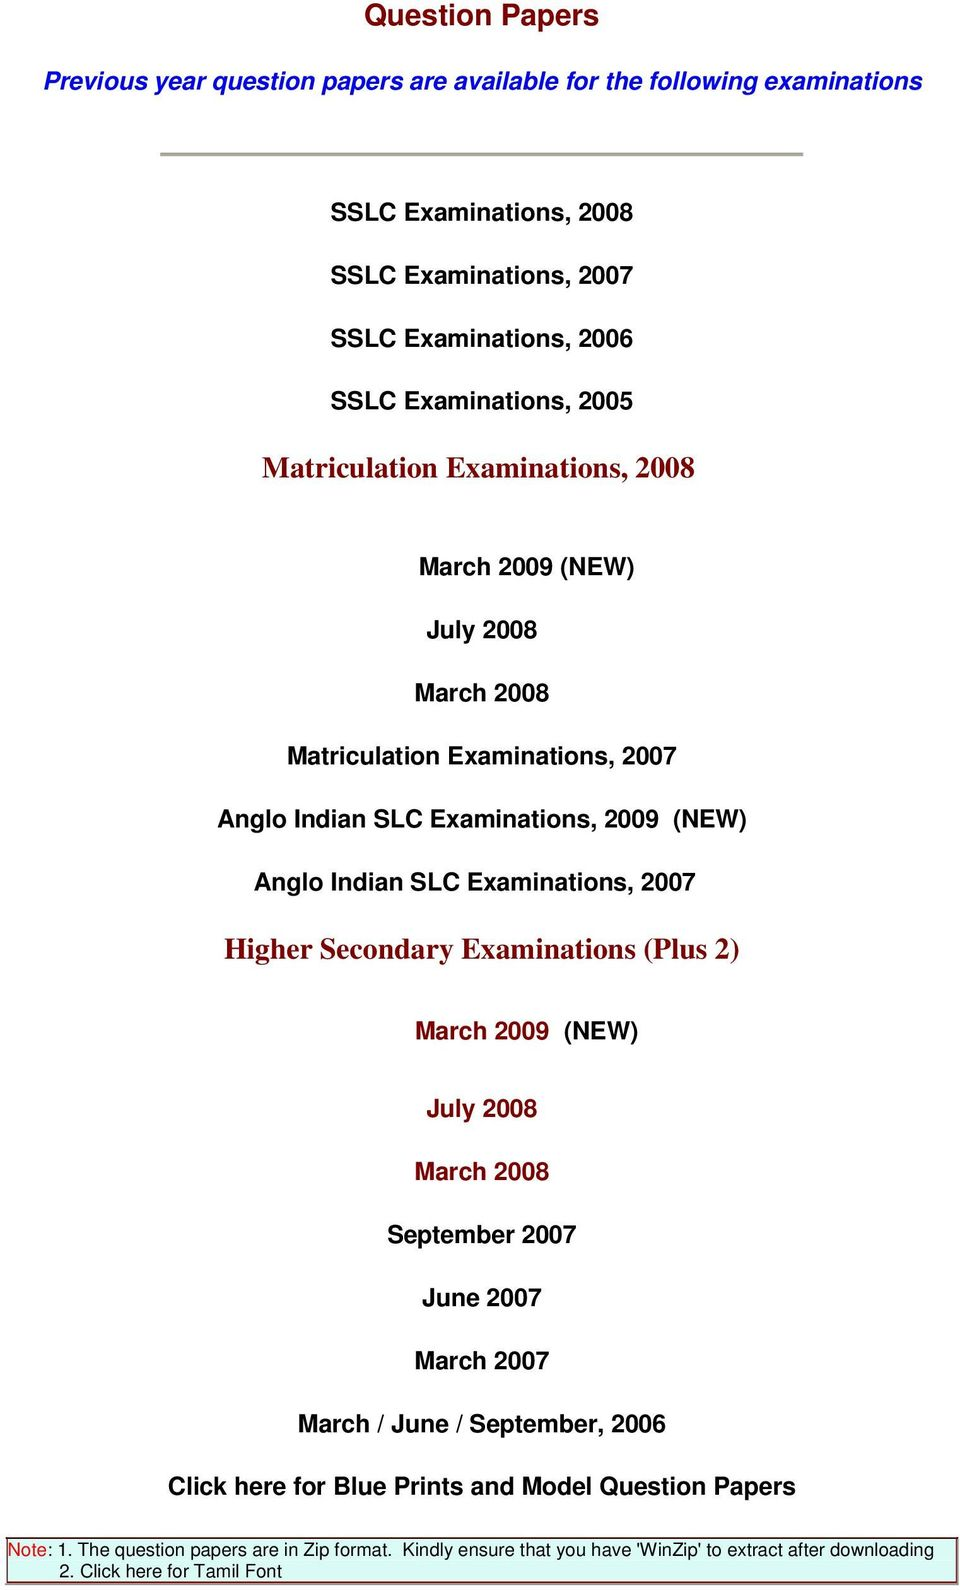 Indian SLC Examinations, 2007 Higher Secondary Examinations (Plus 2) March 2009 (NEW) July 2008 March 2008 September 2007 June 2007 March 2007 March / June / September, 2006